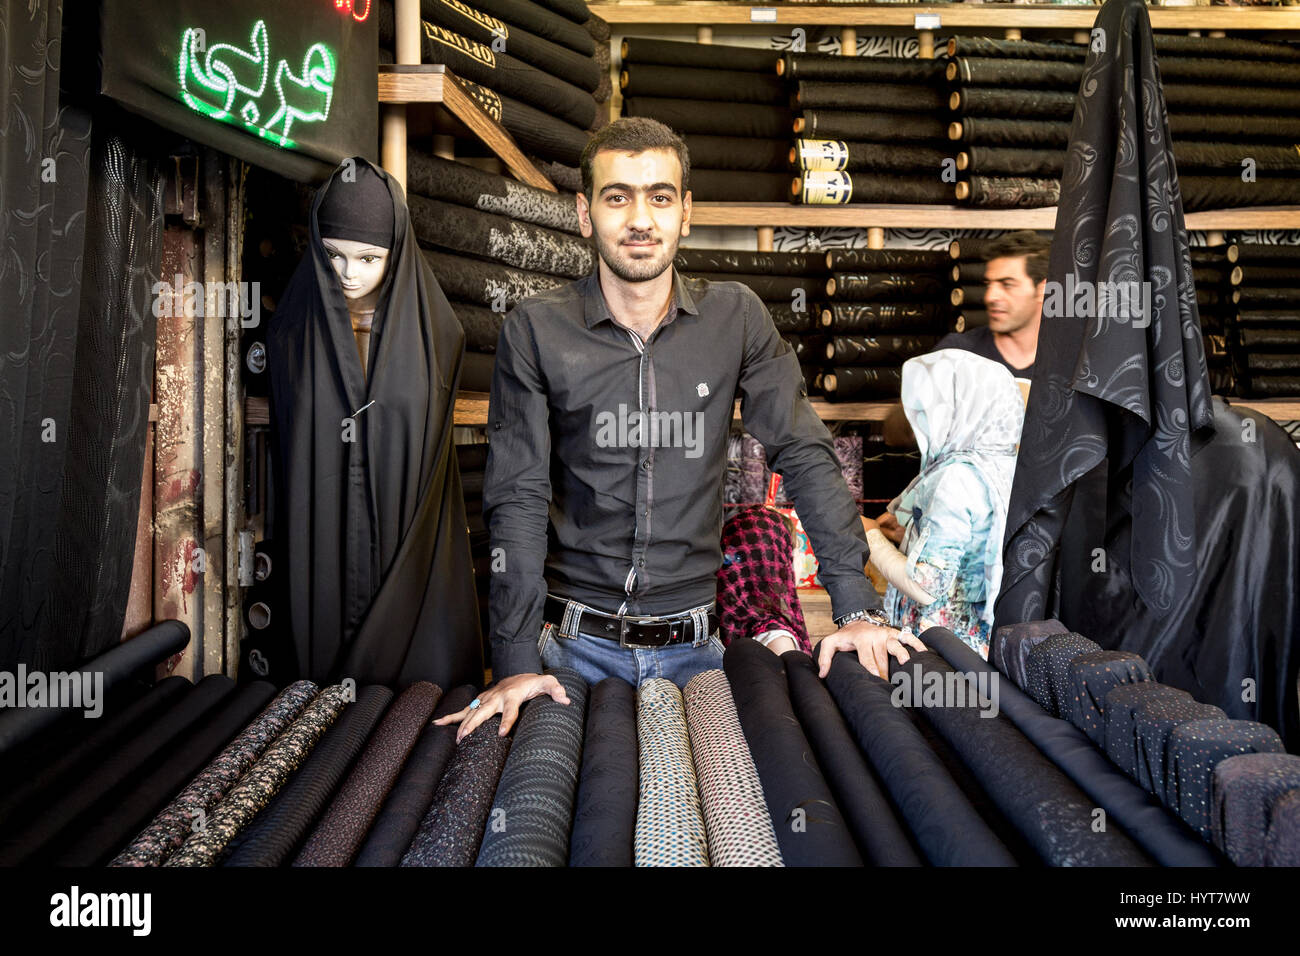 ISFAHAN, IRAN - AUGUST 20, 2016: Islamic outfit seller (hijab, veils and scarfs) in Isfahan bazaar  Picture of a - Stock Image